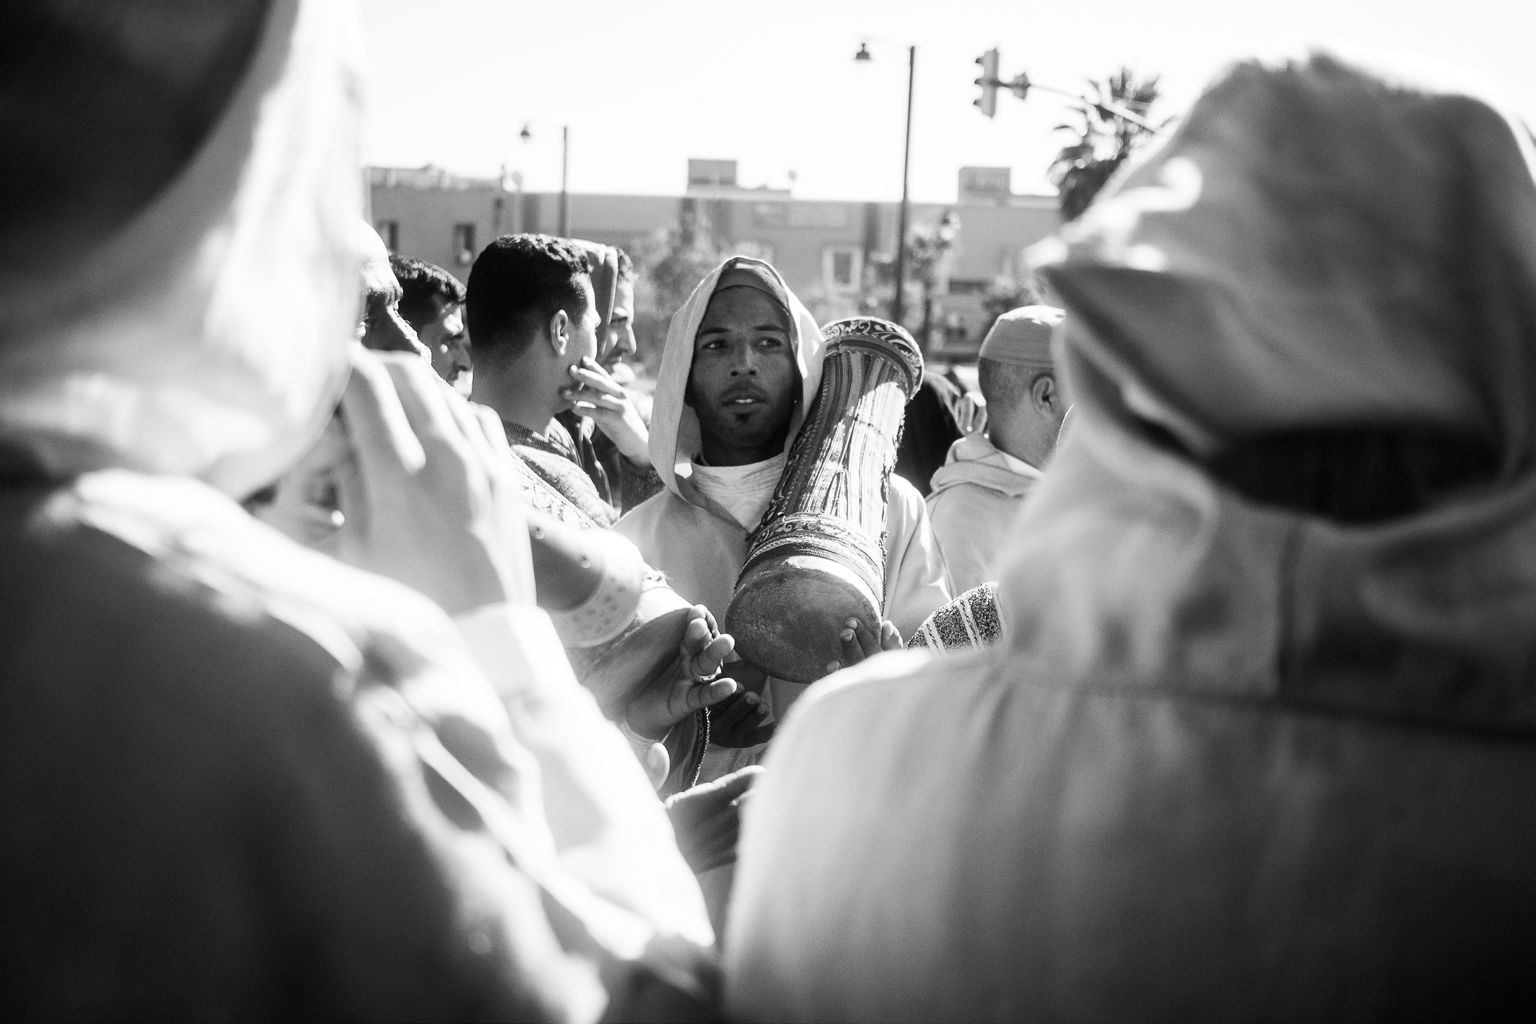 FIGURE 3. A member of the h. amādša confraternity playing a harrāz in Marrakech, during a visit of the king Mohamed VI (December 2016)